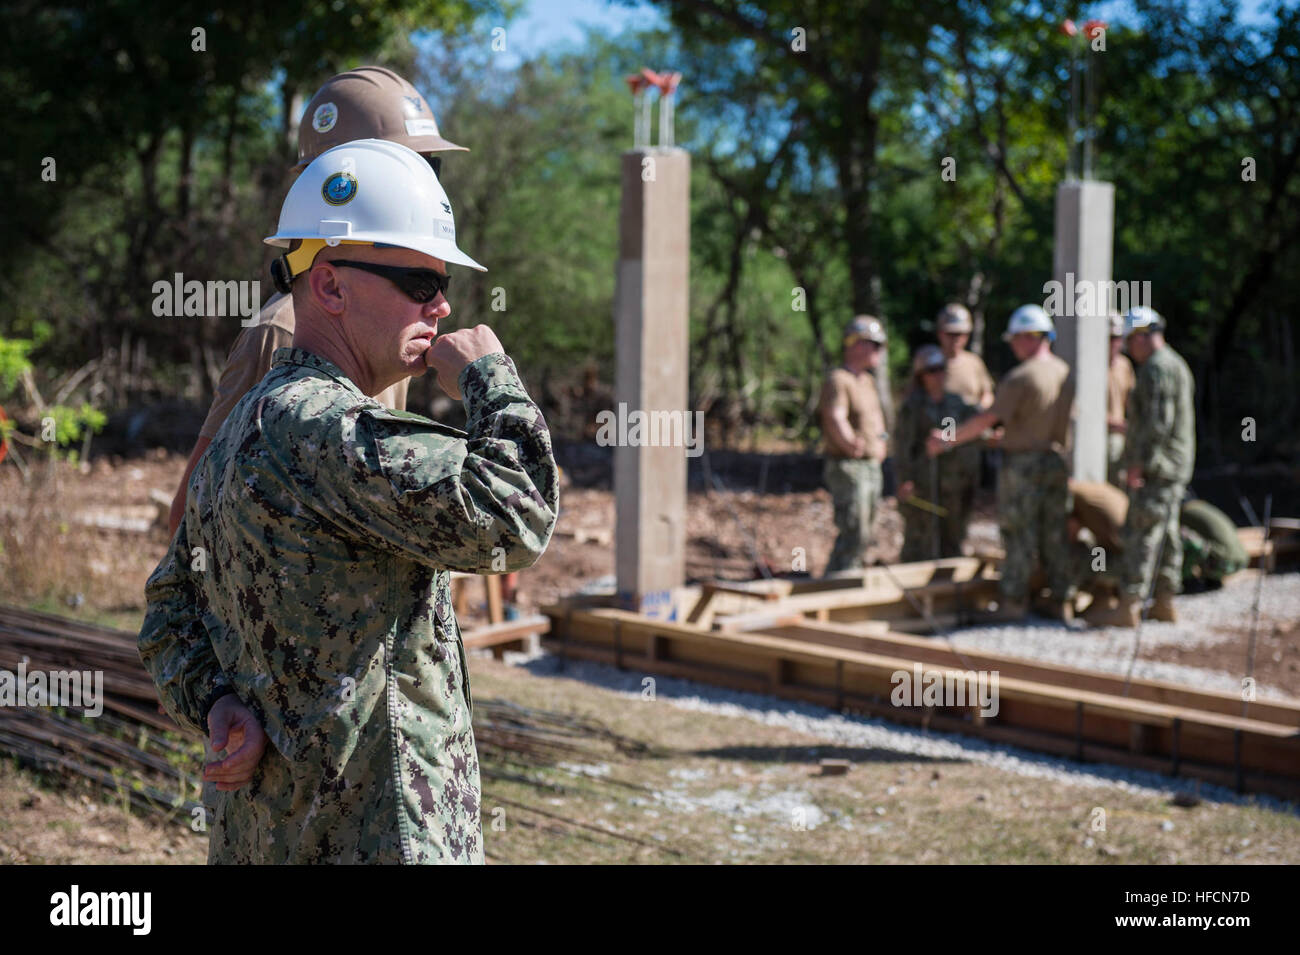 Capt. Rodney Moore, commodore of the 30th Naval Construction Regiment, observes an engineering project at the Tuadale - Stock Image